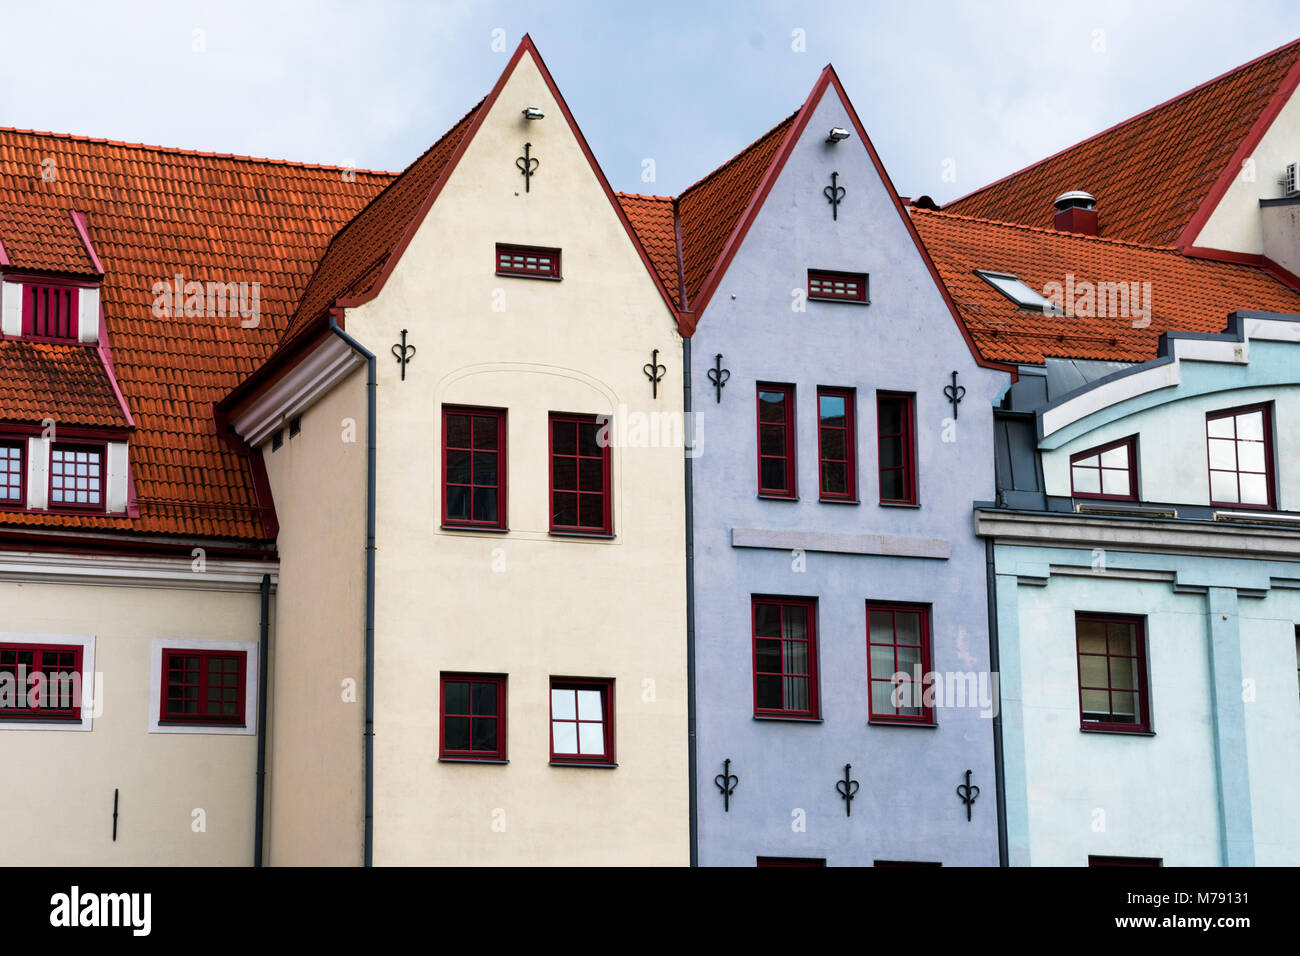 Red tile roof houses in Riga, Latvia - Stock Image